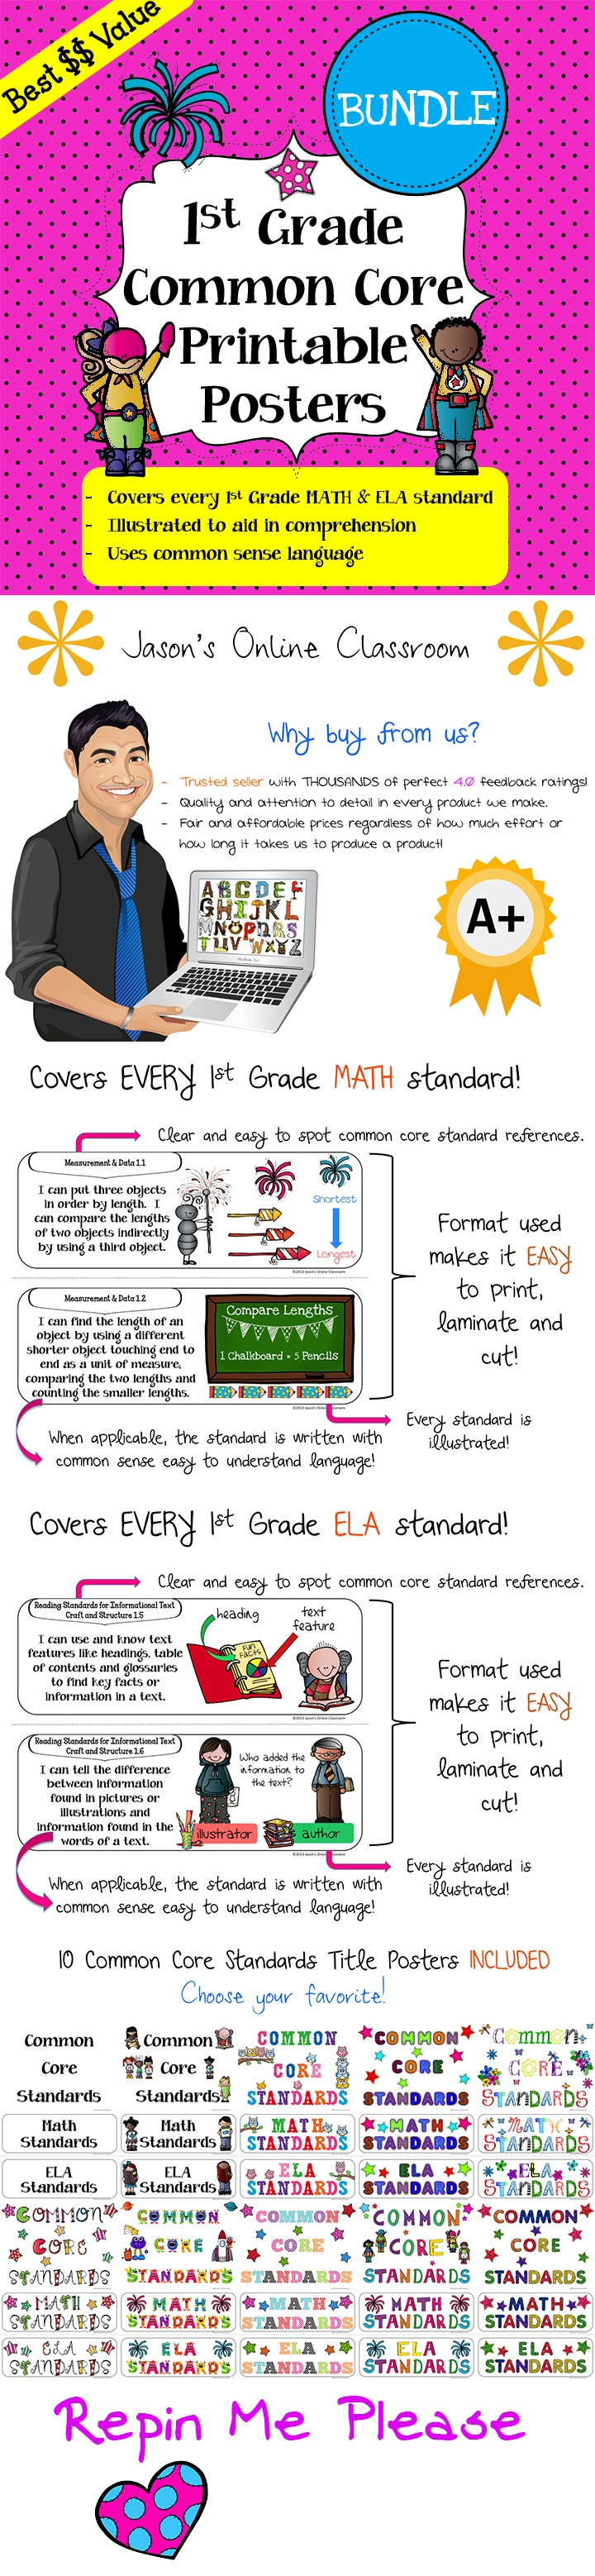 "Common Core Standards ""I Can"" Statements Math & ELA Bundle! - These posters cover every 1st GRADE Math and ELA standard with fun and creative illustrations and common sense common core language. Save a ton of time by using our pre-made posters! Buy now, print later, use forever! $12"